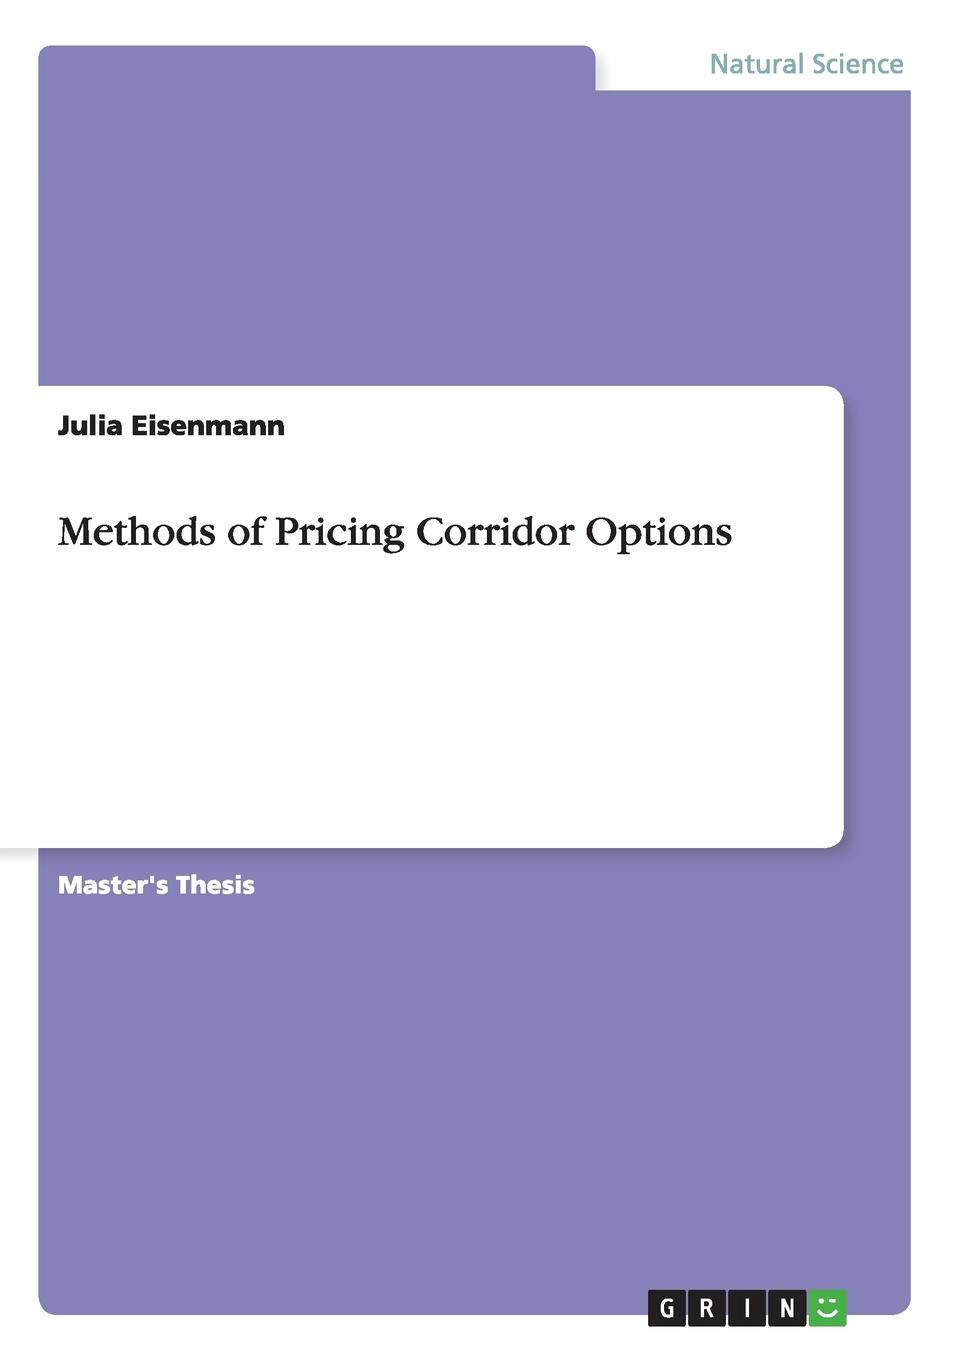 цена на Julia Eisenmann Methods of Pricing Corridor Options